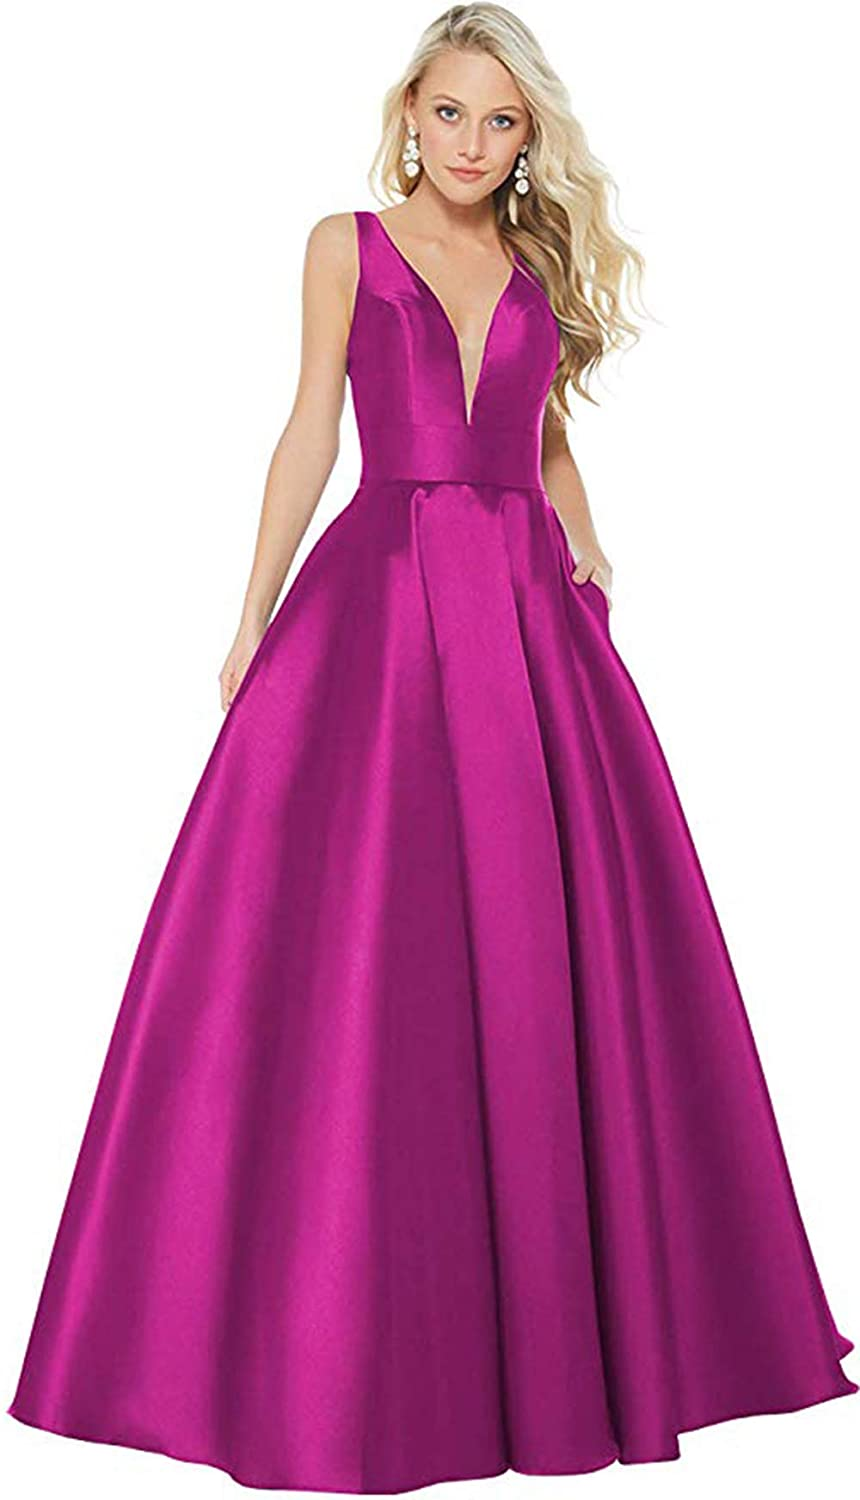 Fuchsia Rmaytiked Womens V Neck Prom Dresses Long 2019 Satin A Line Formal Evening Ball Gowns with Pockets